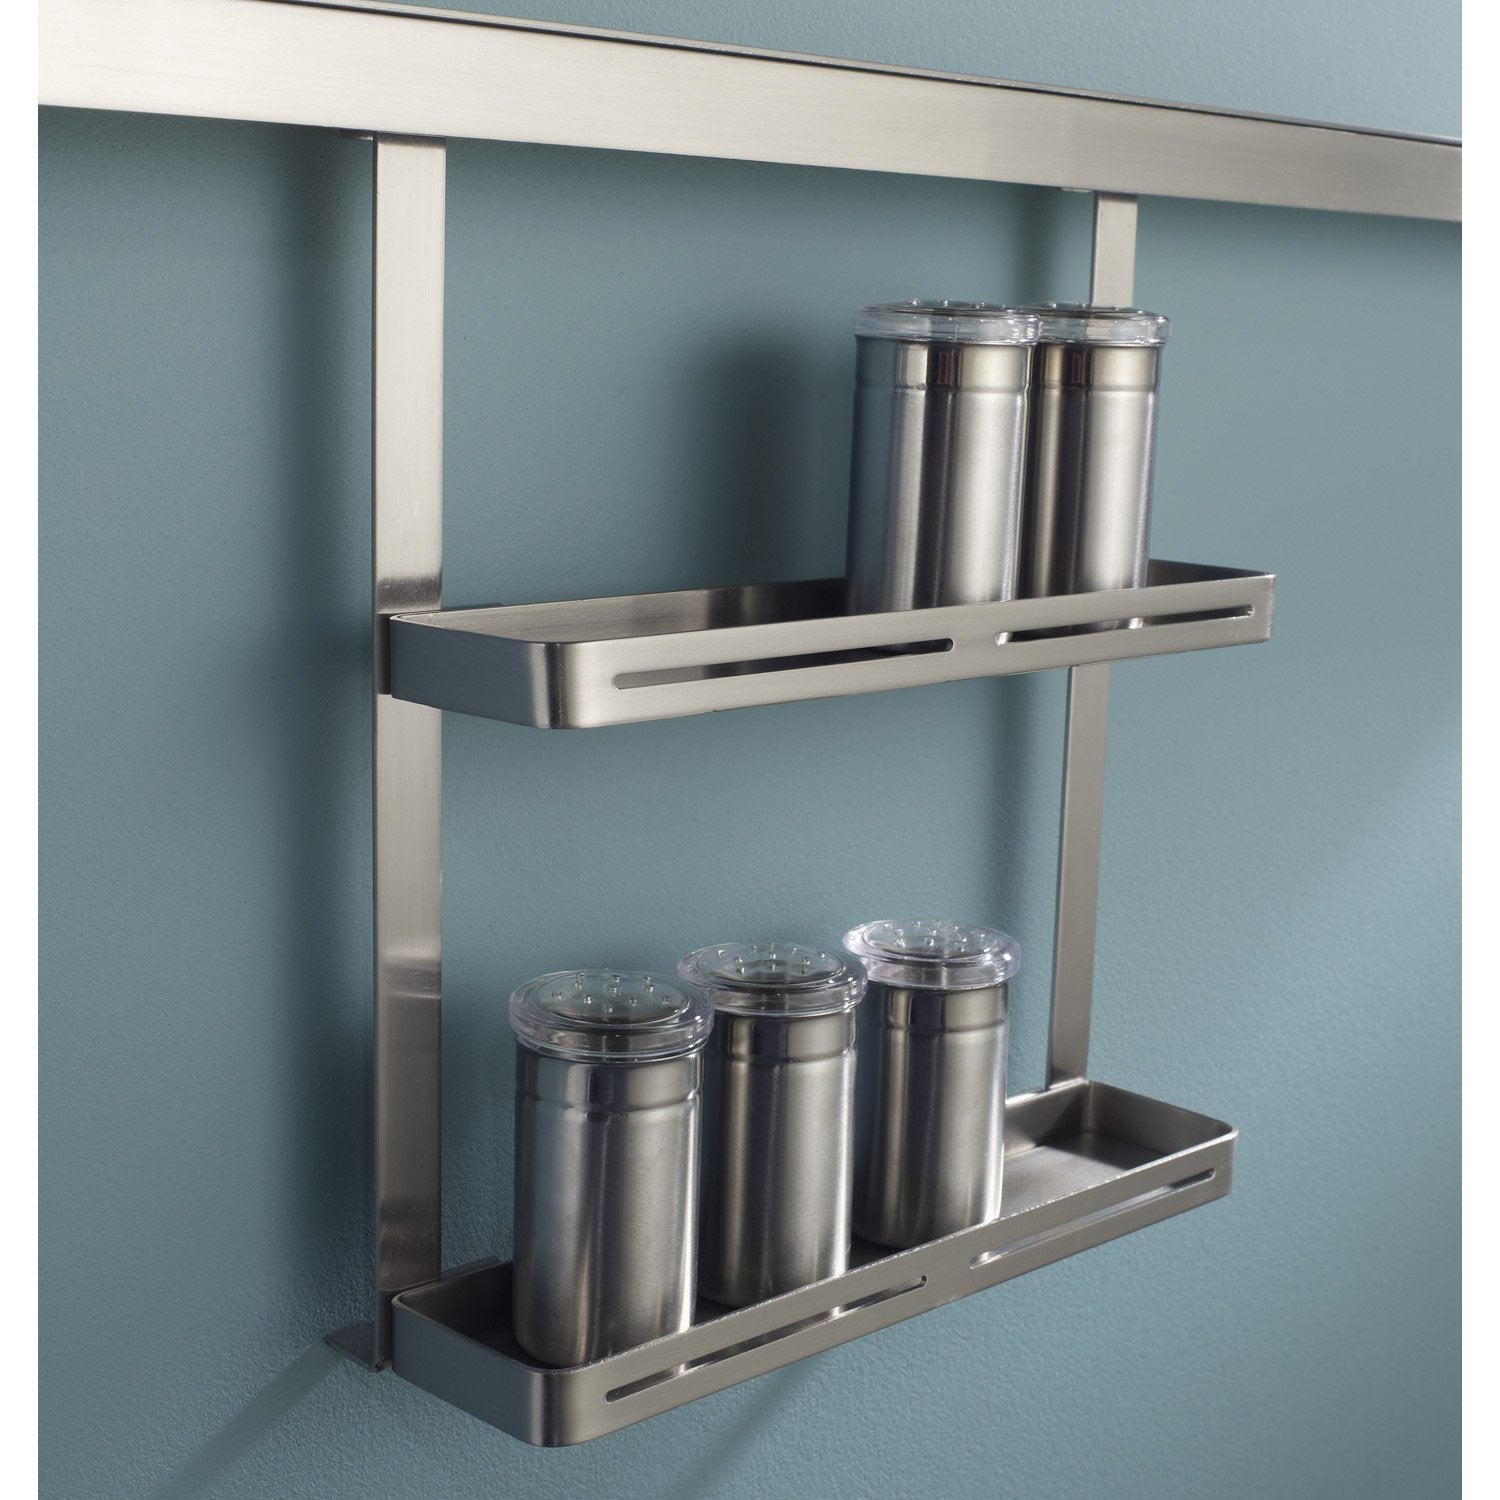 Etag re pices pour barre de cr dence m tal leroy merlin - Etagere metal leroy merlin ...